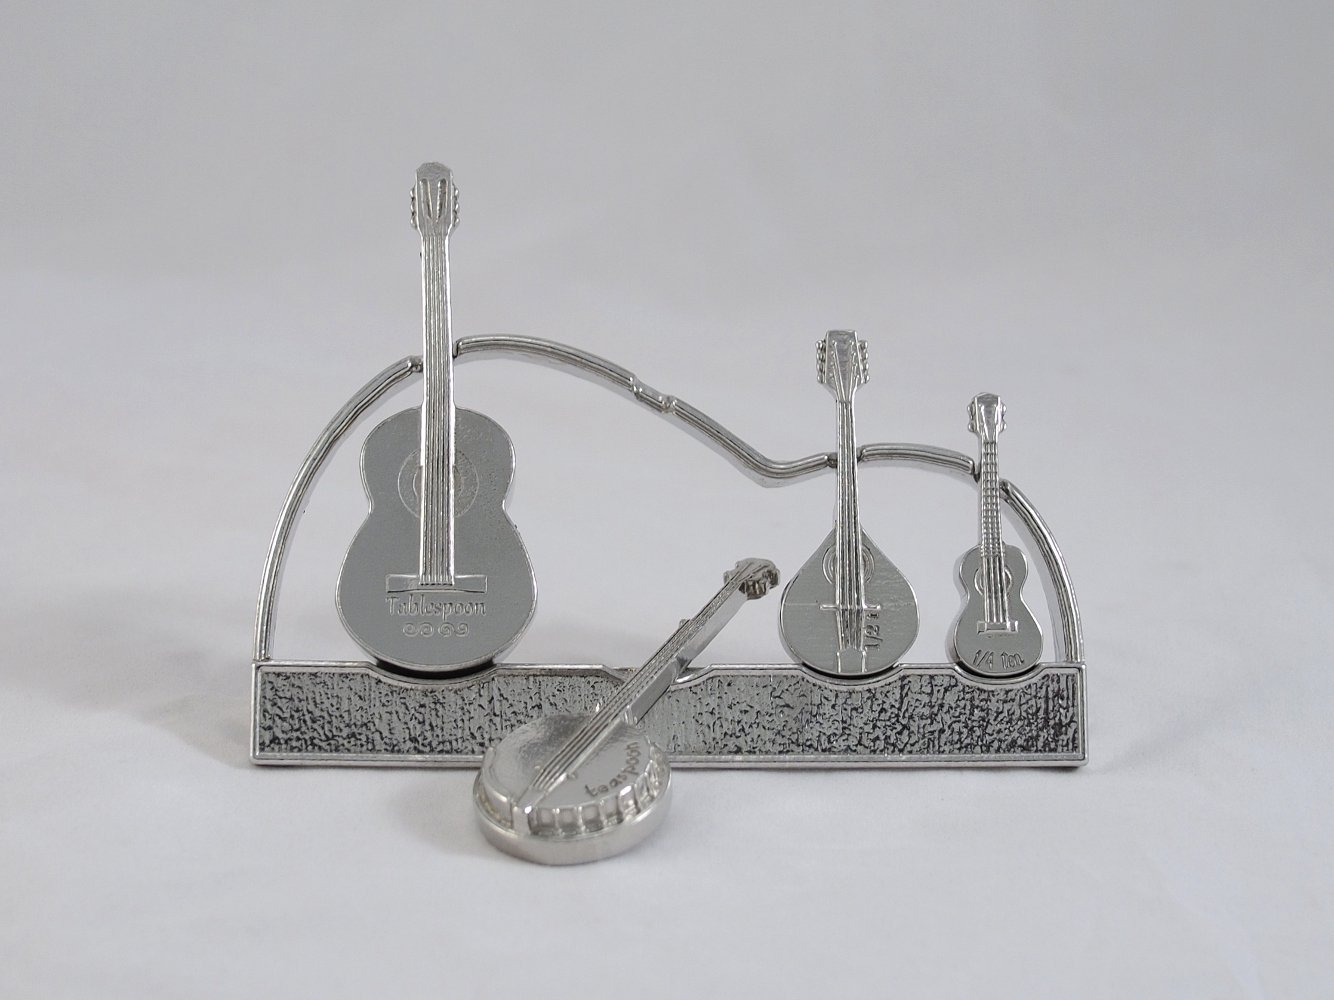 Americana Measuring Spoons with Display Stand cast in Pewter